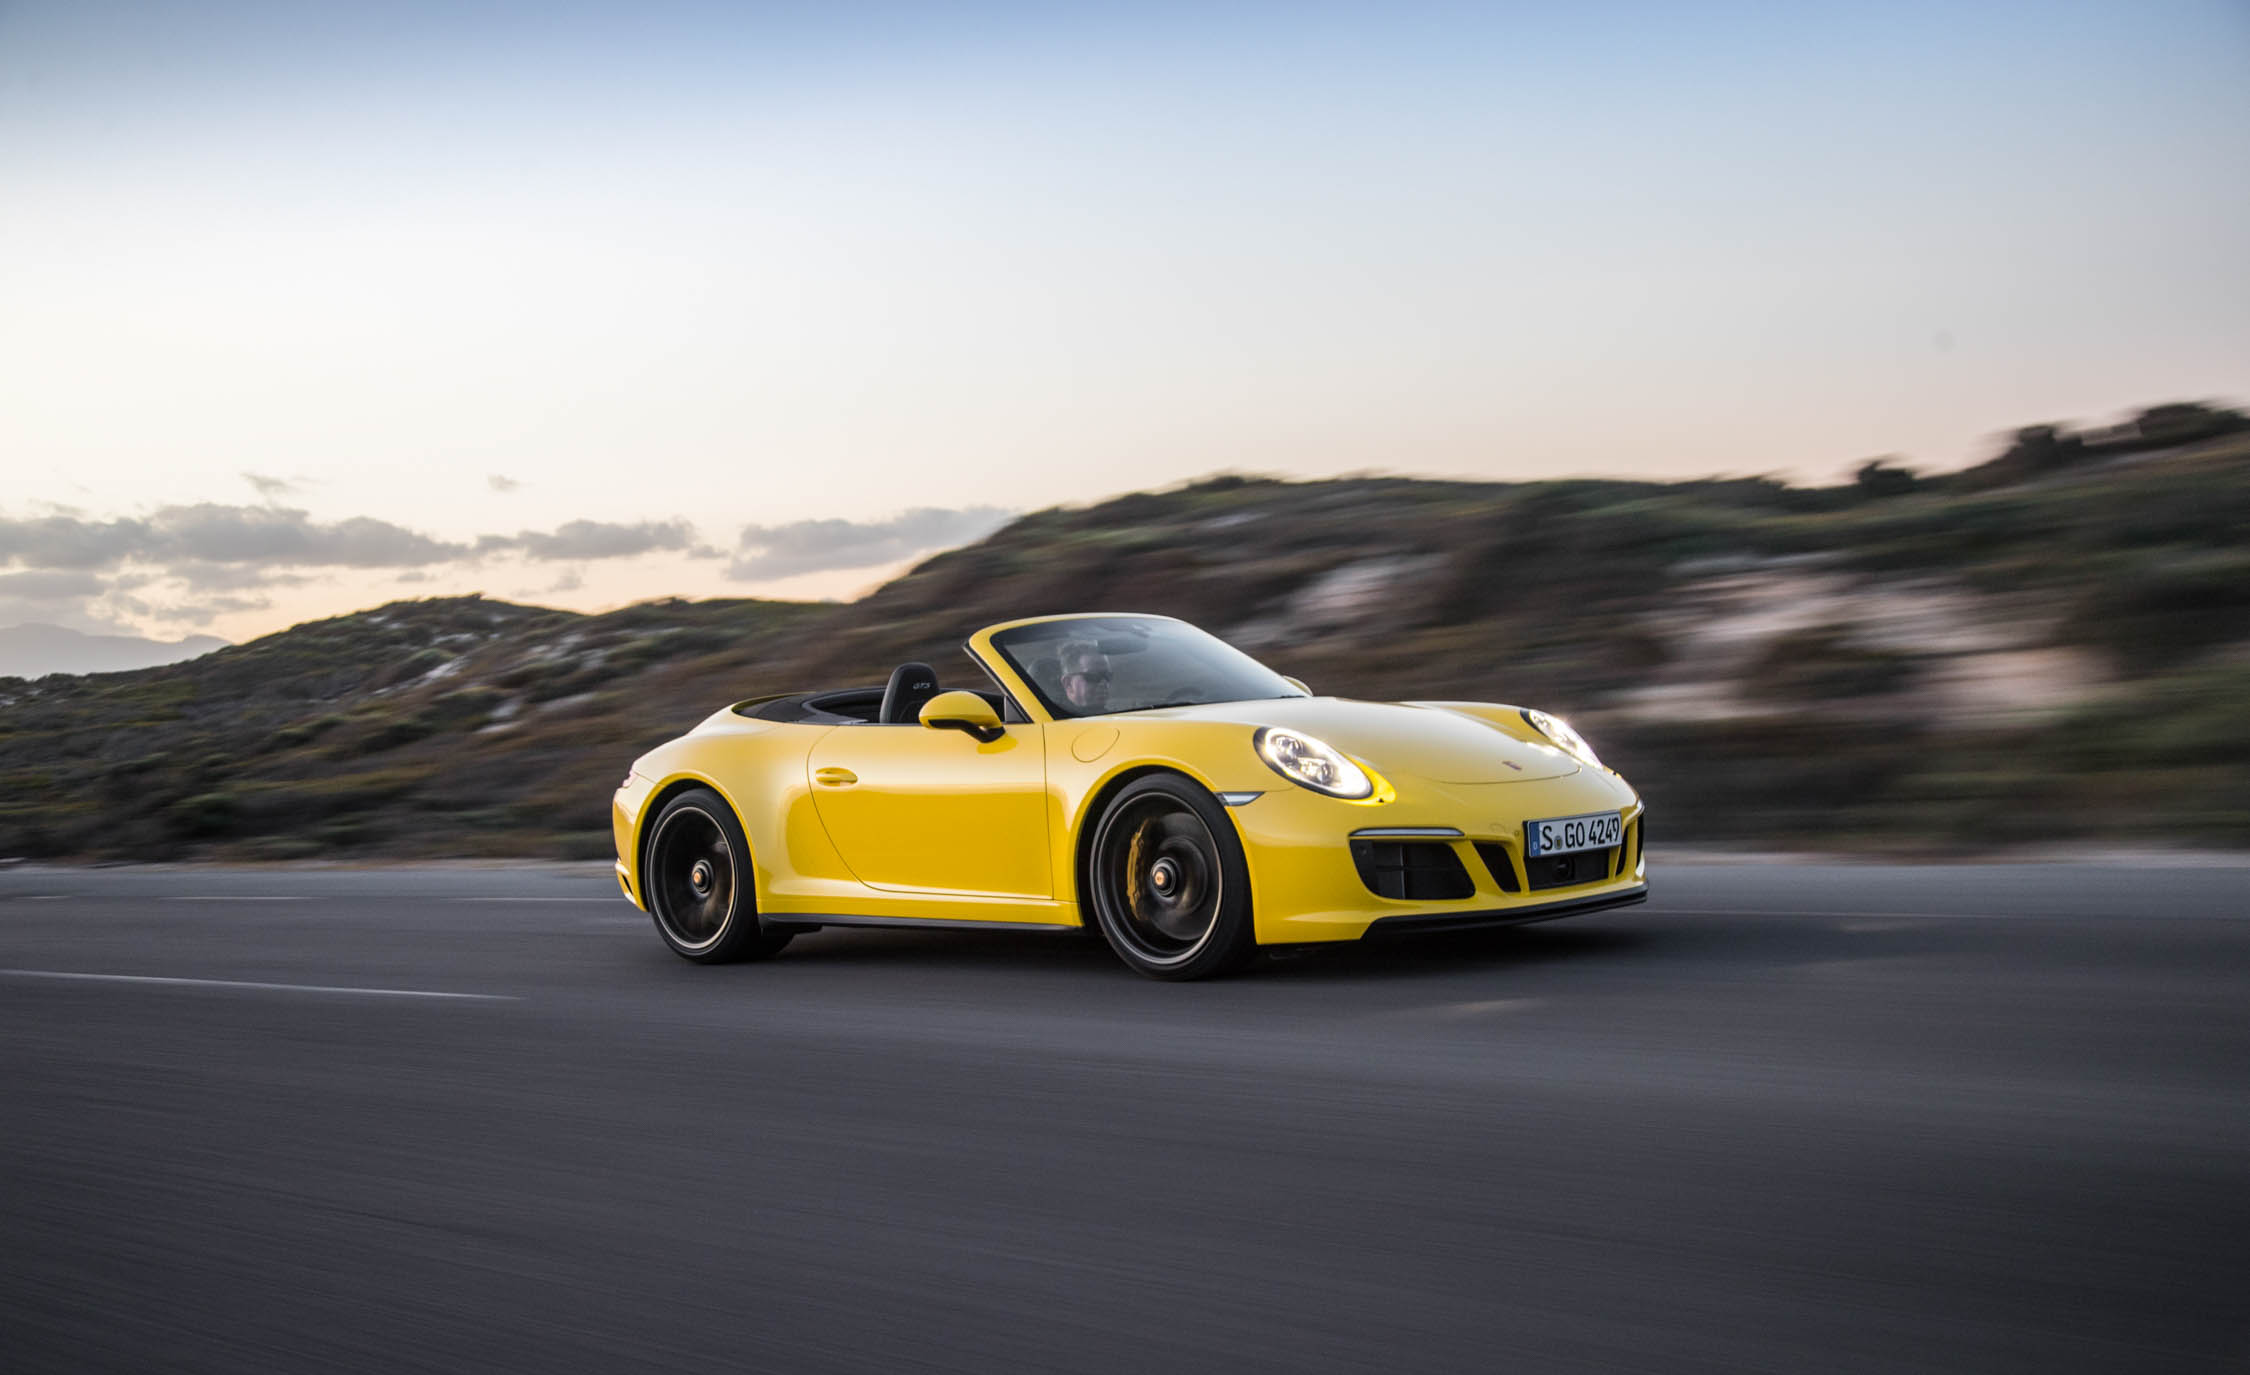 2017 Porsche 911 Carrera 4 GTS Cabriolet Color Yellow (Photo 2 of 97)